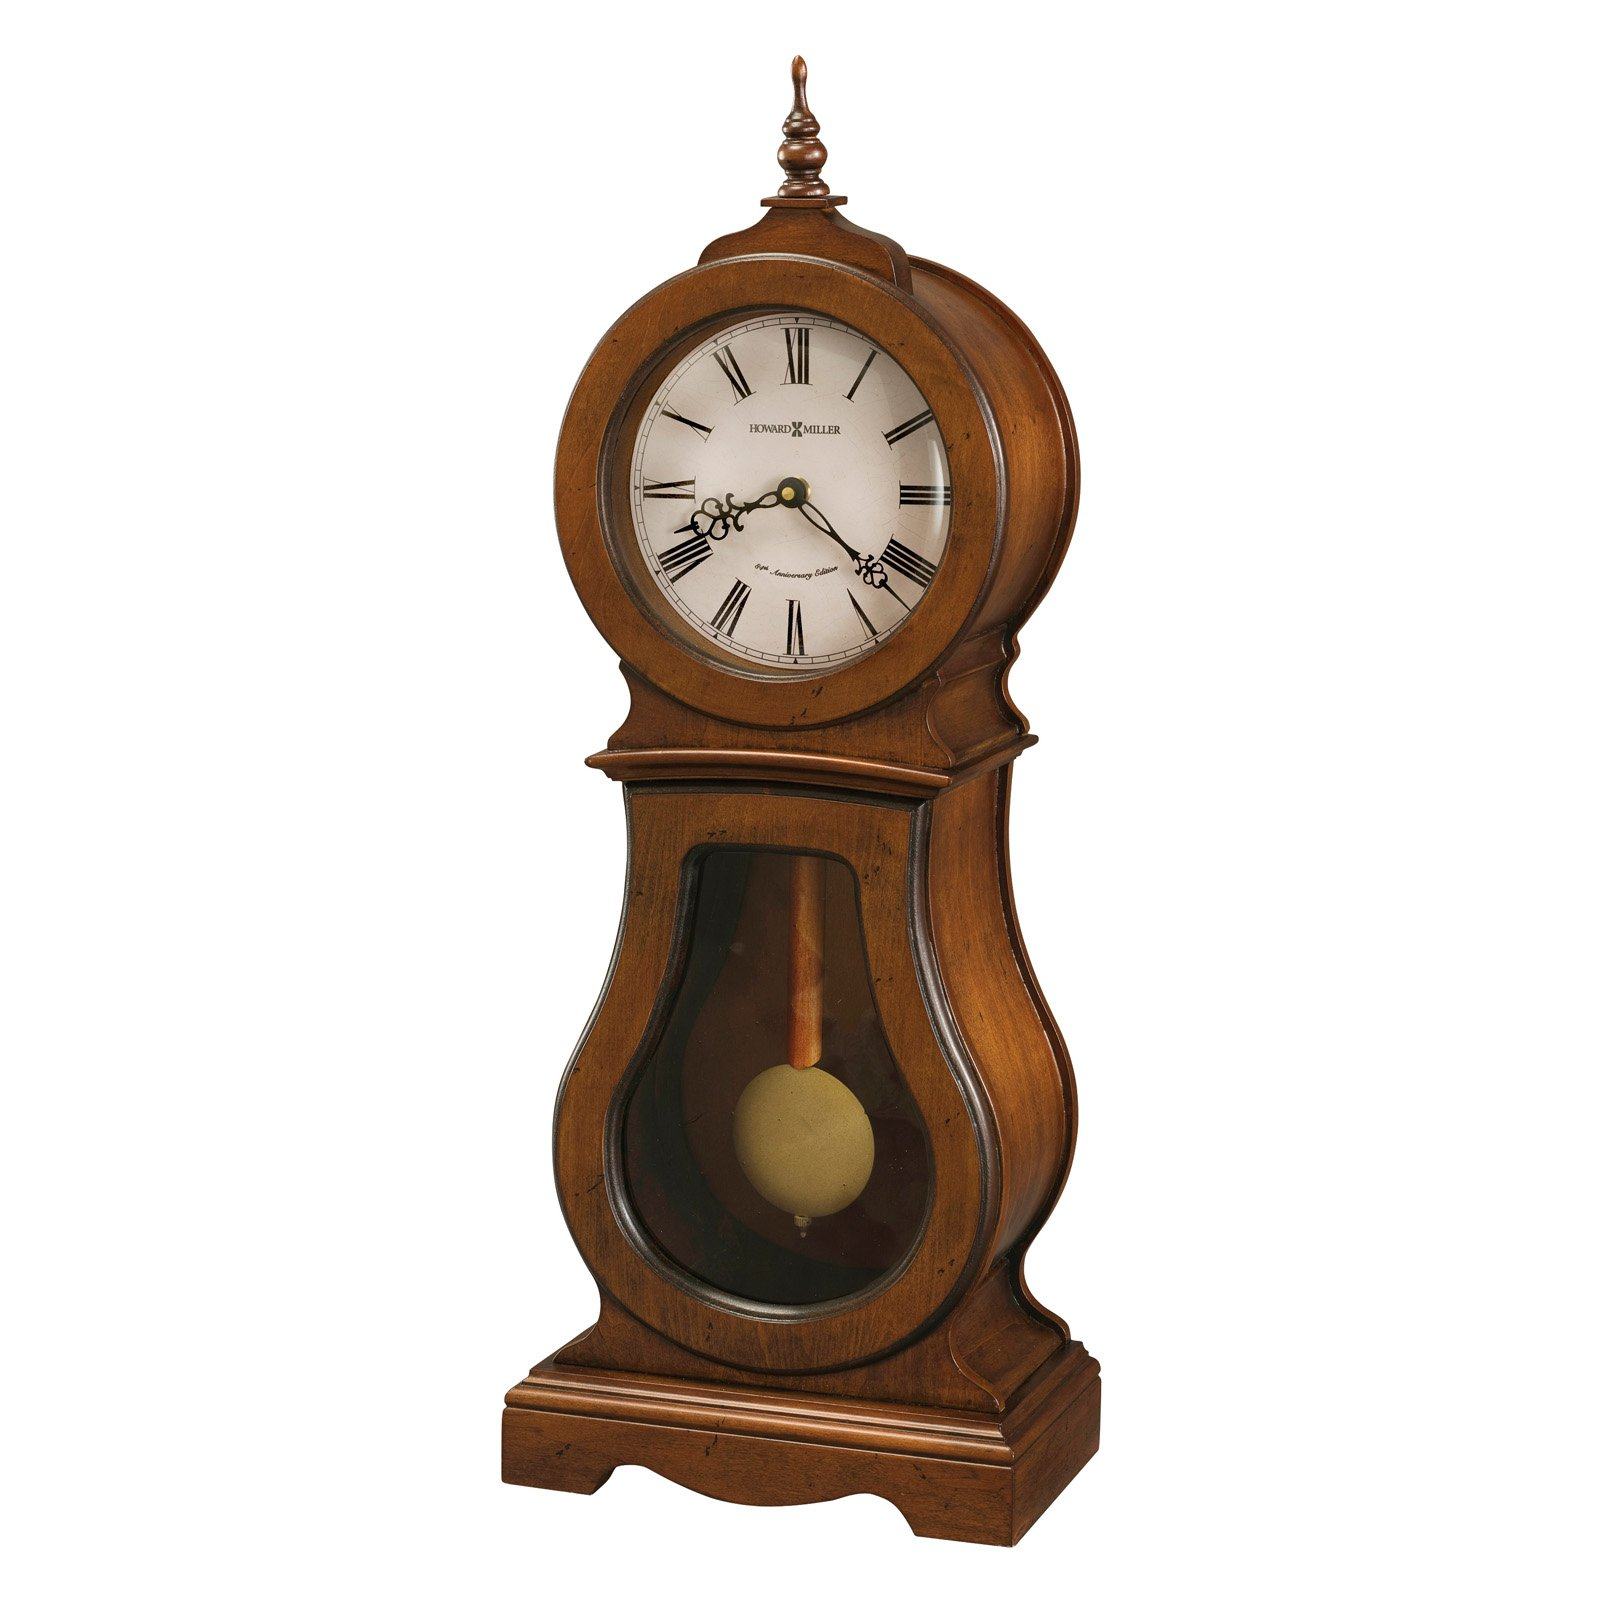 Howard Miller 635-162 Cleo Mantel Clock by Howard Miller